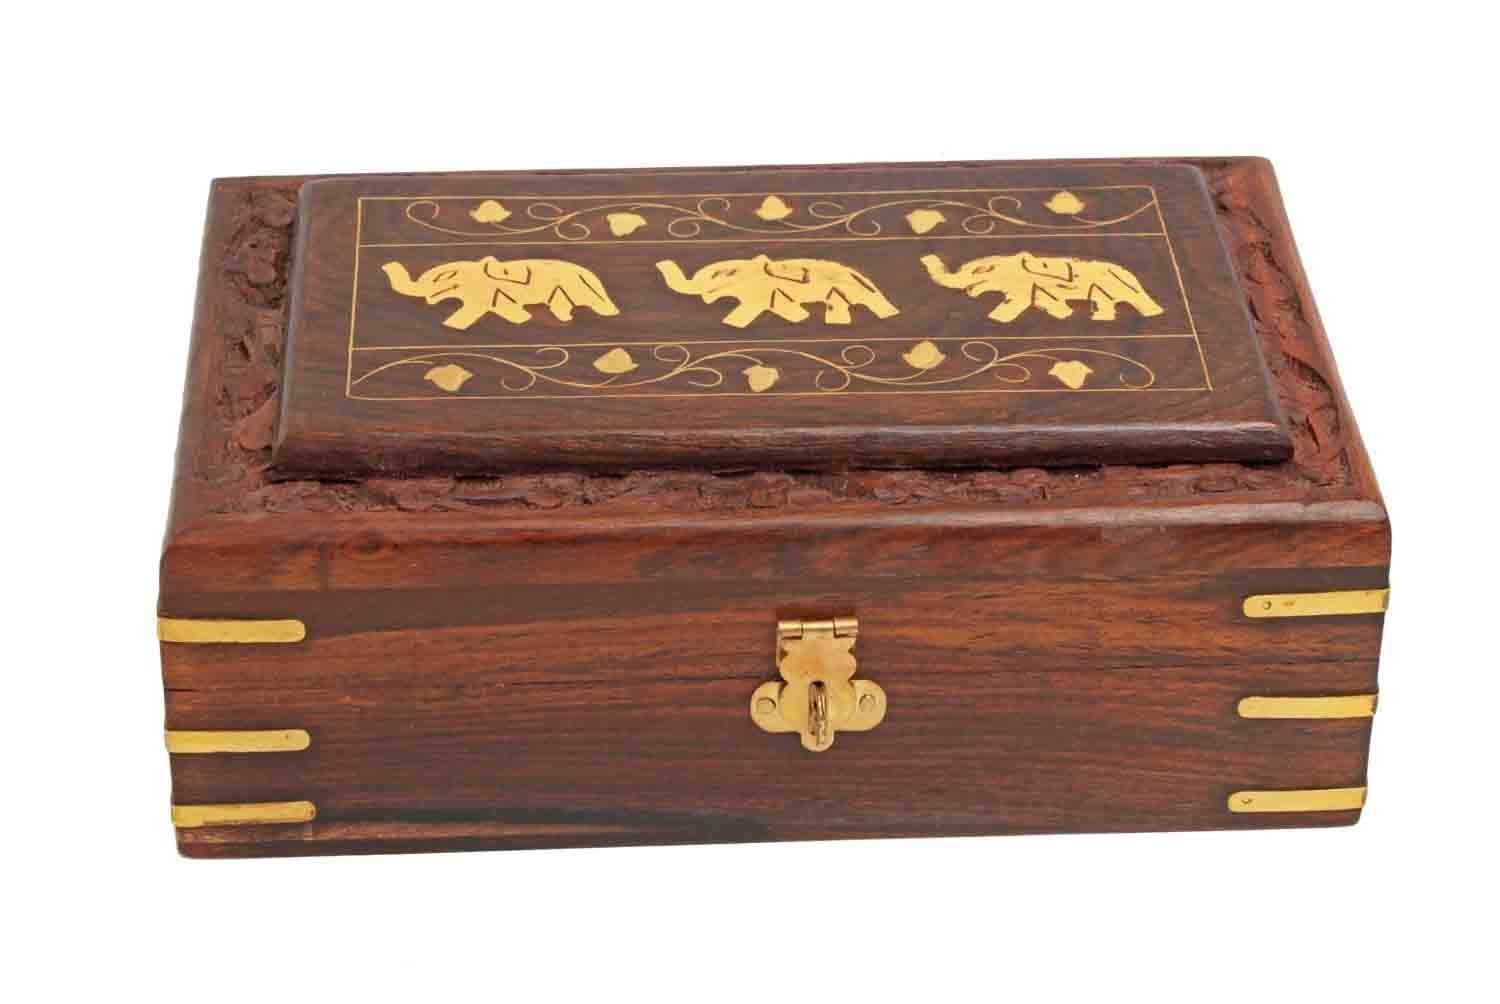 IndiaBigShop Decorative Wooden Jewelry Trinket Holder Keepsake Storage Box Organizer with Intricately Hand Carved Tripple Elephant Brass Inlay & Velvet Interior 8 X 5 Inch